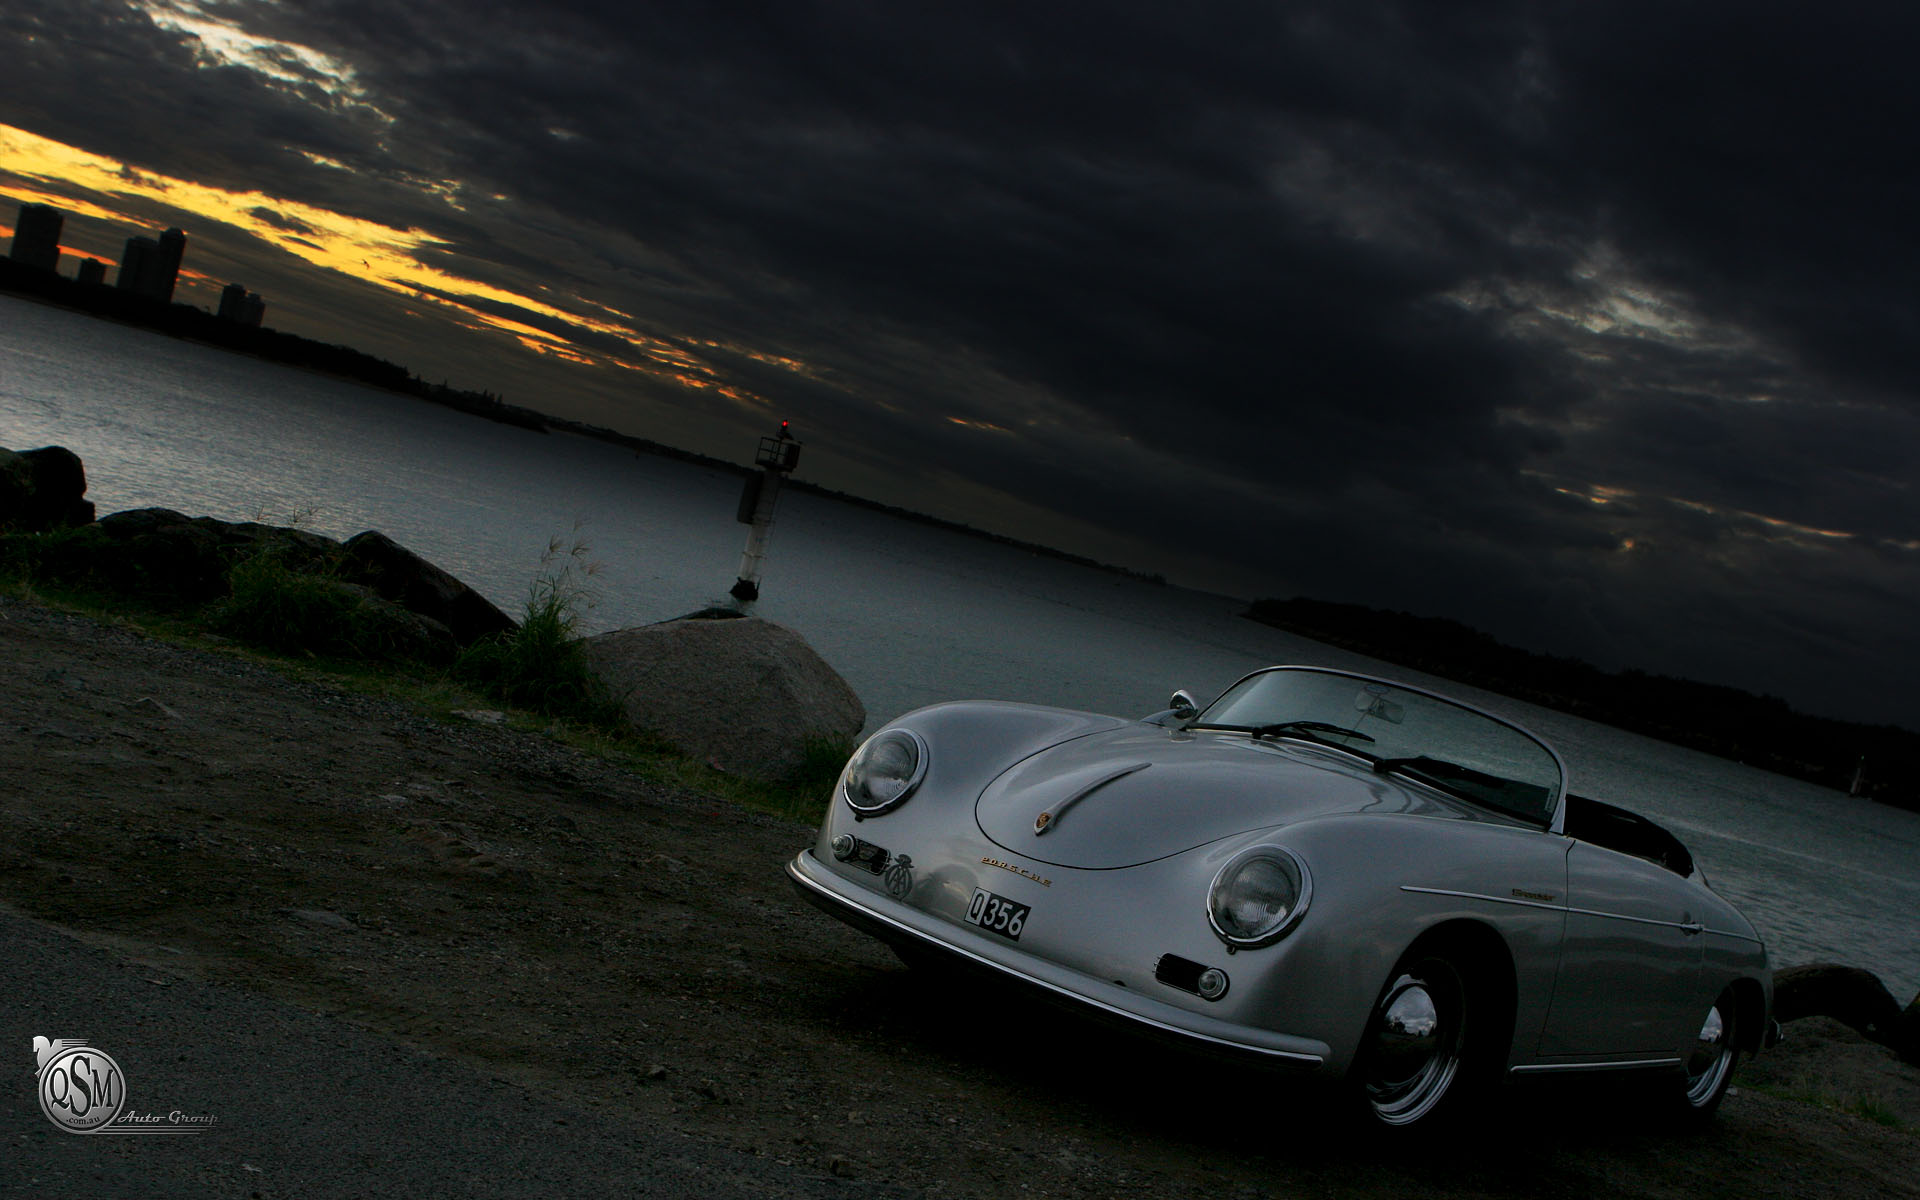 Classic Porsche Wallpaper Wallpapersafari